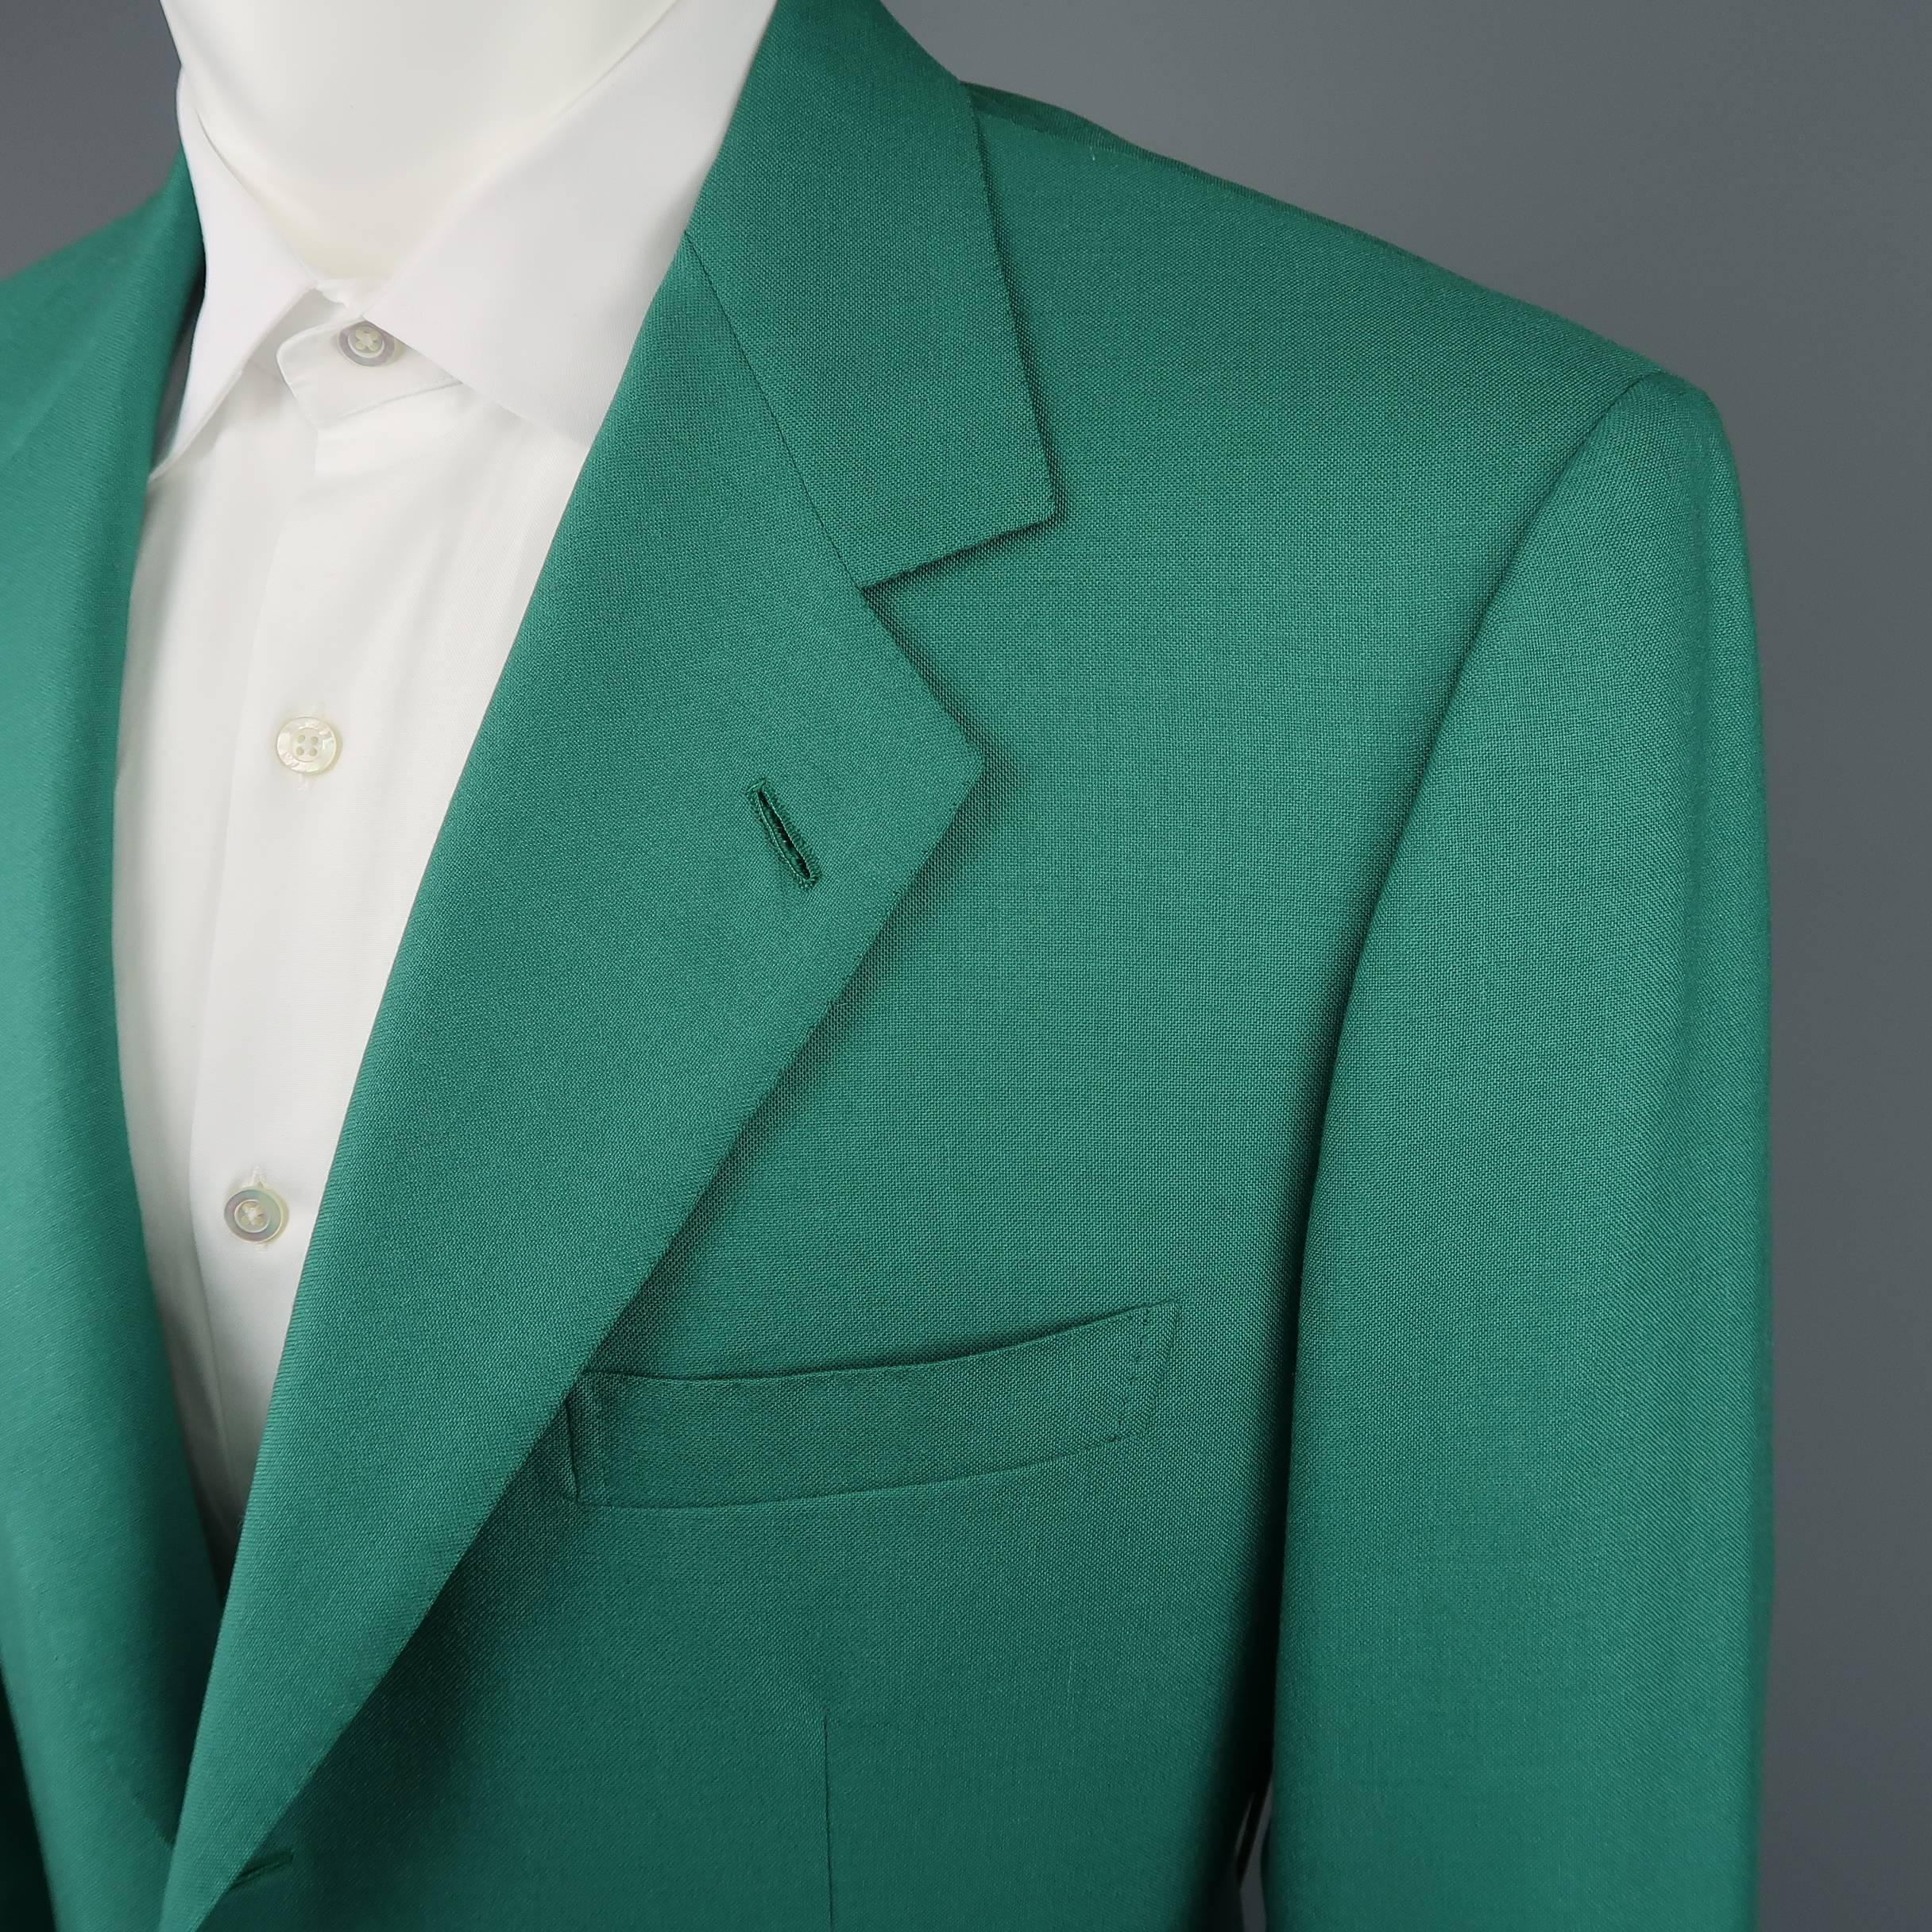 Mens Vintage Brioni 40 Green Cashmere Gold Enamel Button Sport Coat Tailored Jacket With Twin Buttons For Sale At 1stdibs